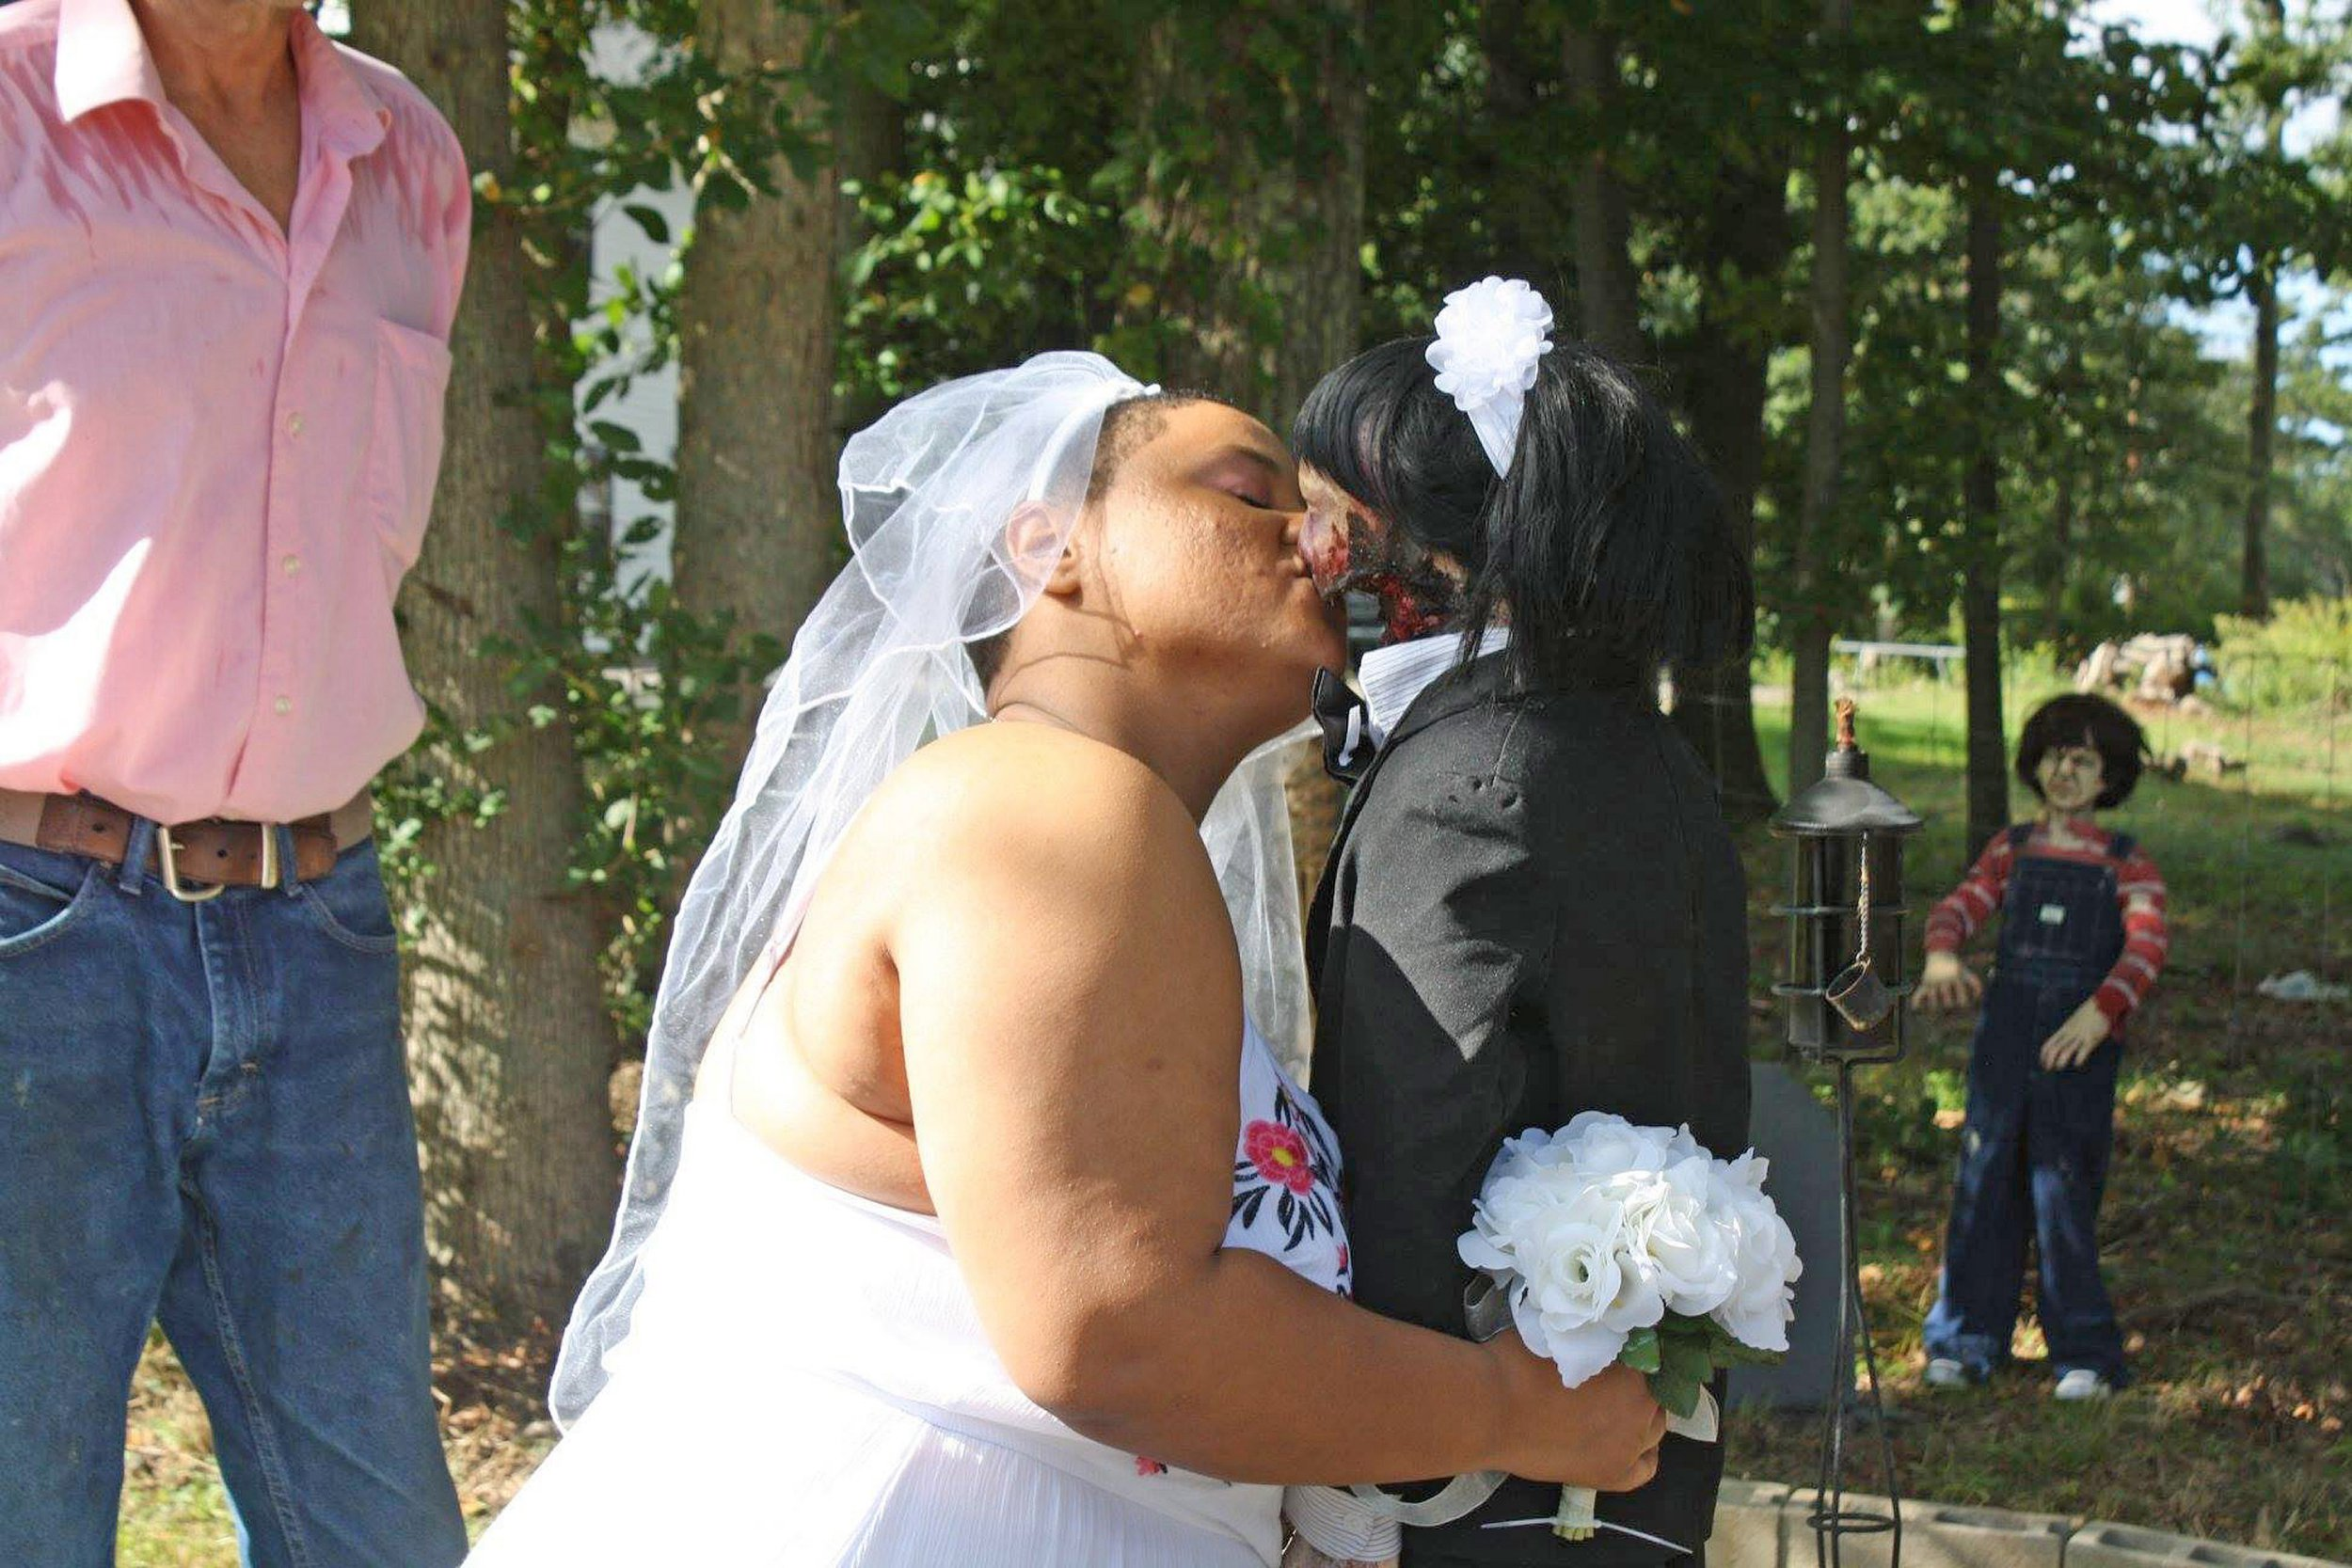 (PICTURED : Felicity Kadlec, 20, and her 37-year-old zombie doll wife, Kelly Rossi, on their matrimony day on Sep 16 2018.) A lady has claimed that her universe is now finish after she MARRIED her zombie doll. Felicity Kadlec, 20, marry a adore of her life Kelly Rossi, a zombie doll who she claims is 37-years-old, 6 months ago (Sept 15). The pleasing ceremony, that took place in Tiverton, Rhode Island, USA, cost Felicity 500USD (388GBP) - covering her possess matrimony dress, a fit for Kelly and decorations for a outside venue. Alongside 4 of her family friends, 8 of Felicitys other dolls also attended a rite to uncover their support. - SEE CATERS COPY